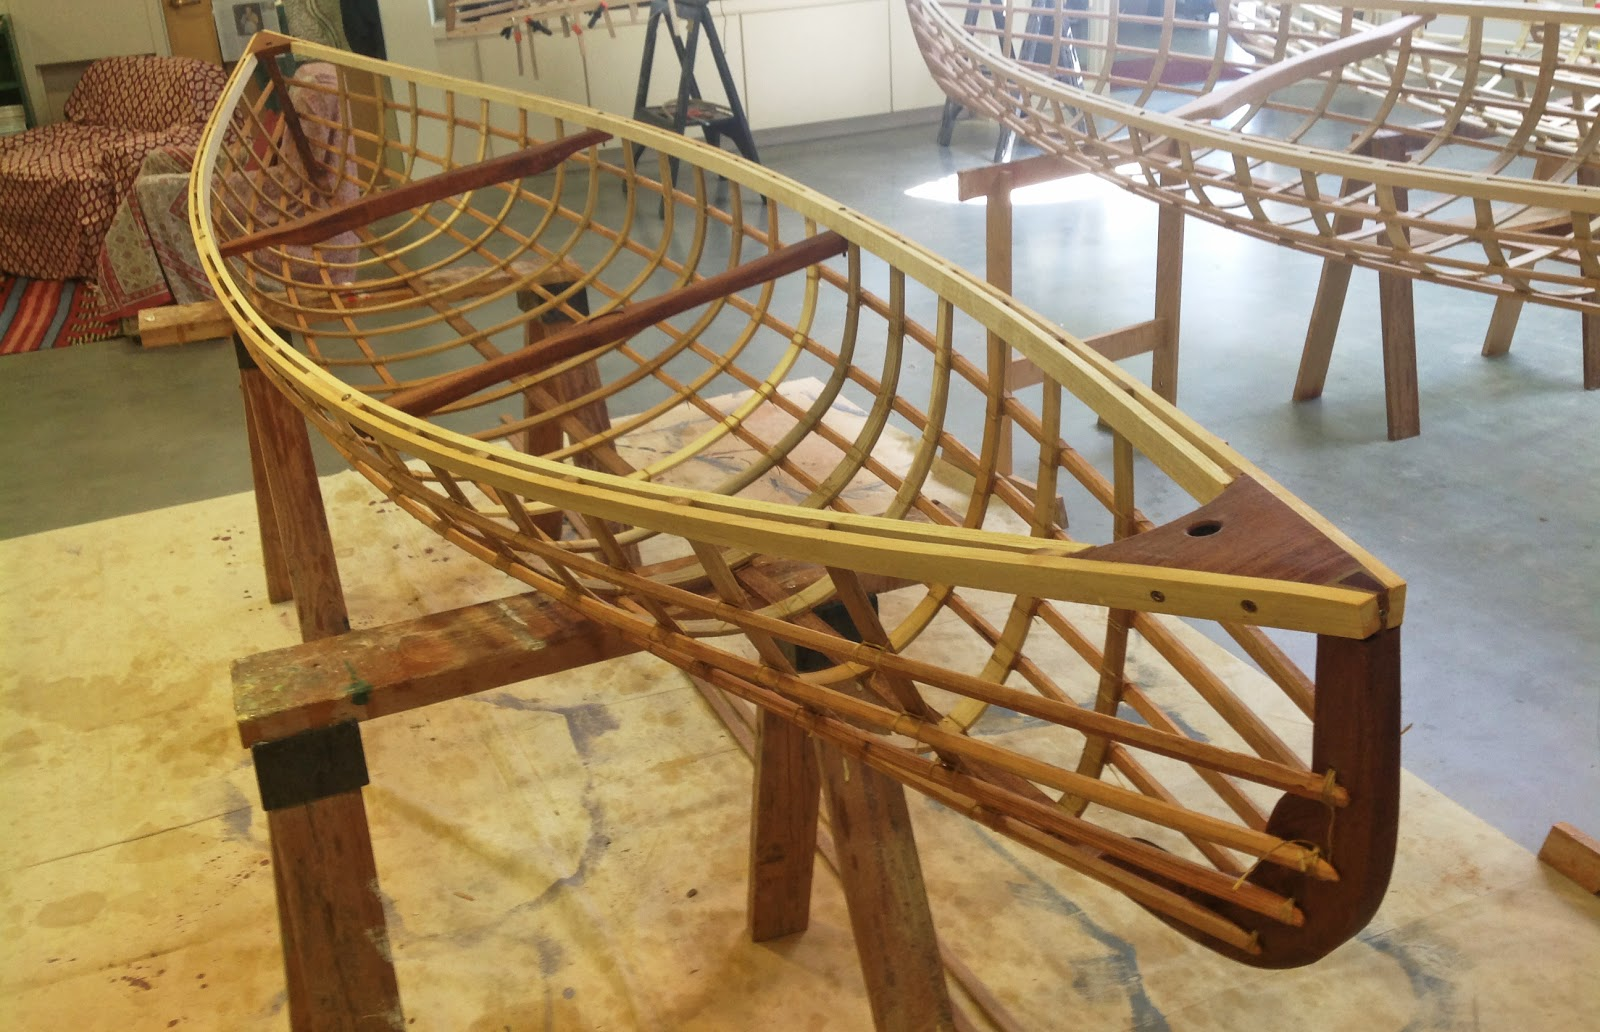 Boat frame oiled and ready for skinning